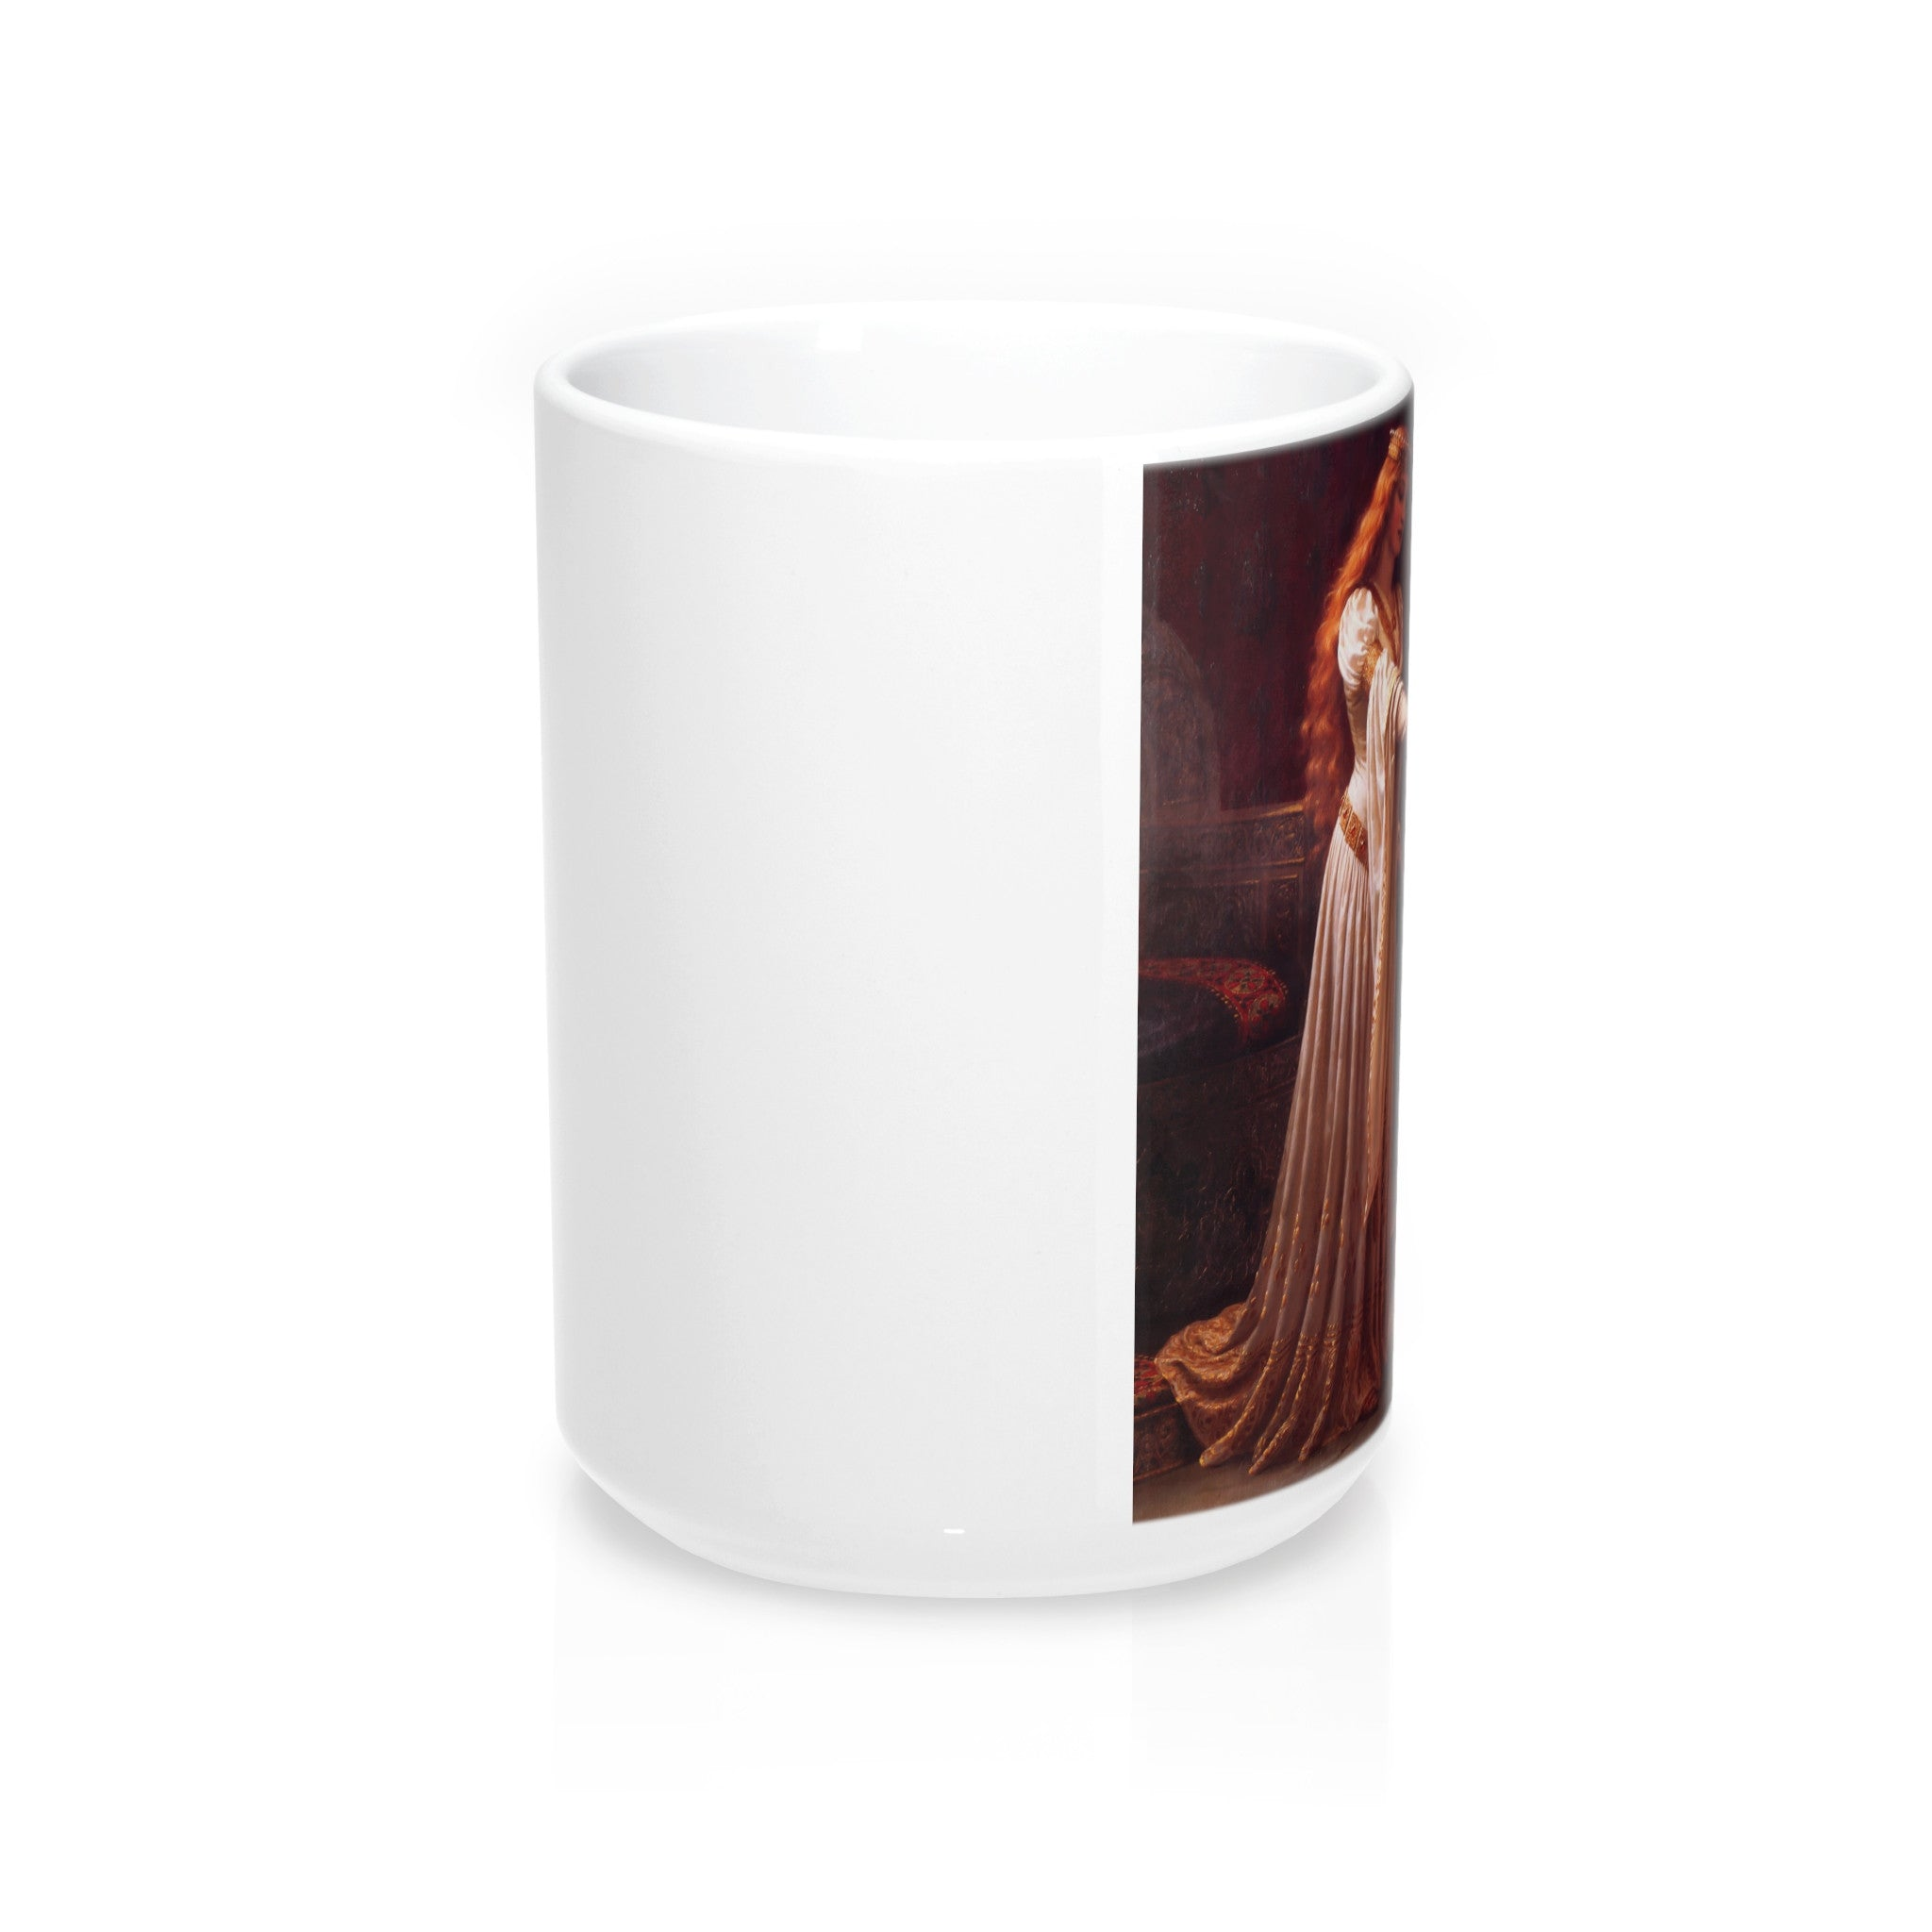 The Accolade by Edmund Leighton Coffee Mug 15oz.